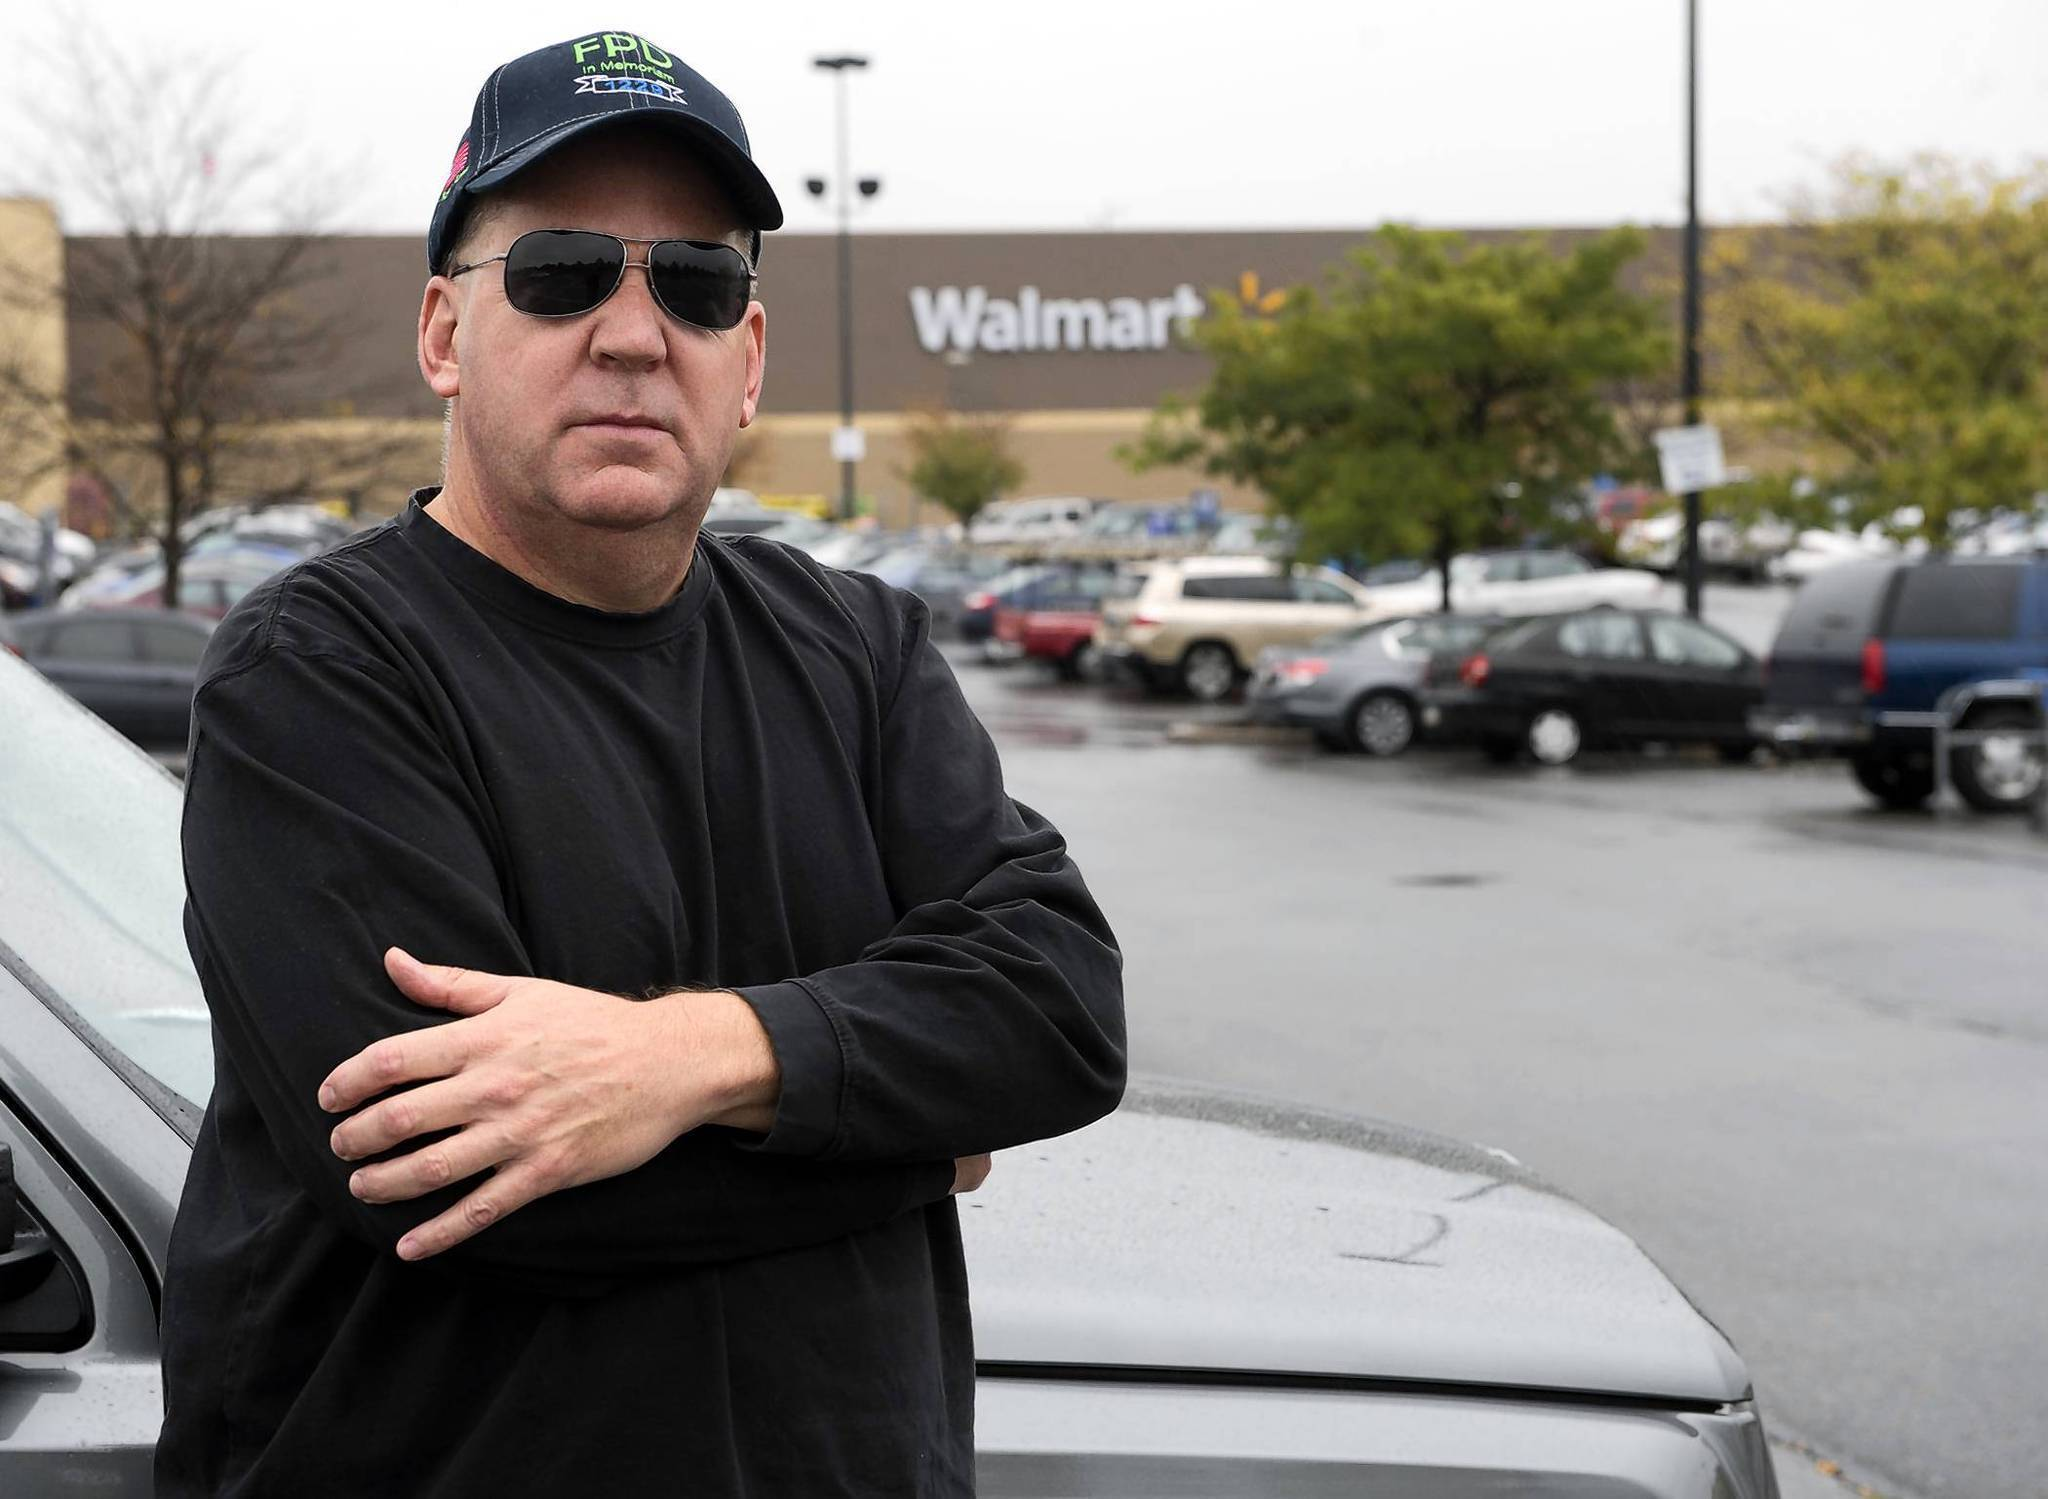 Walmart's tough stance on shoplifters taxes local police